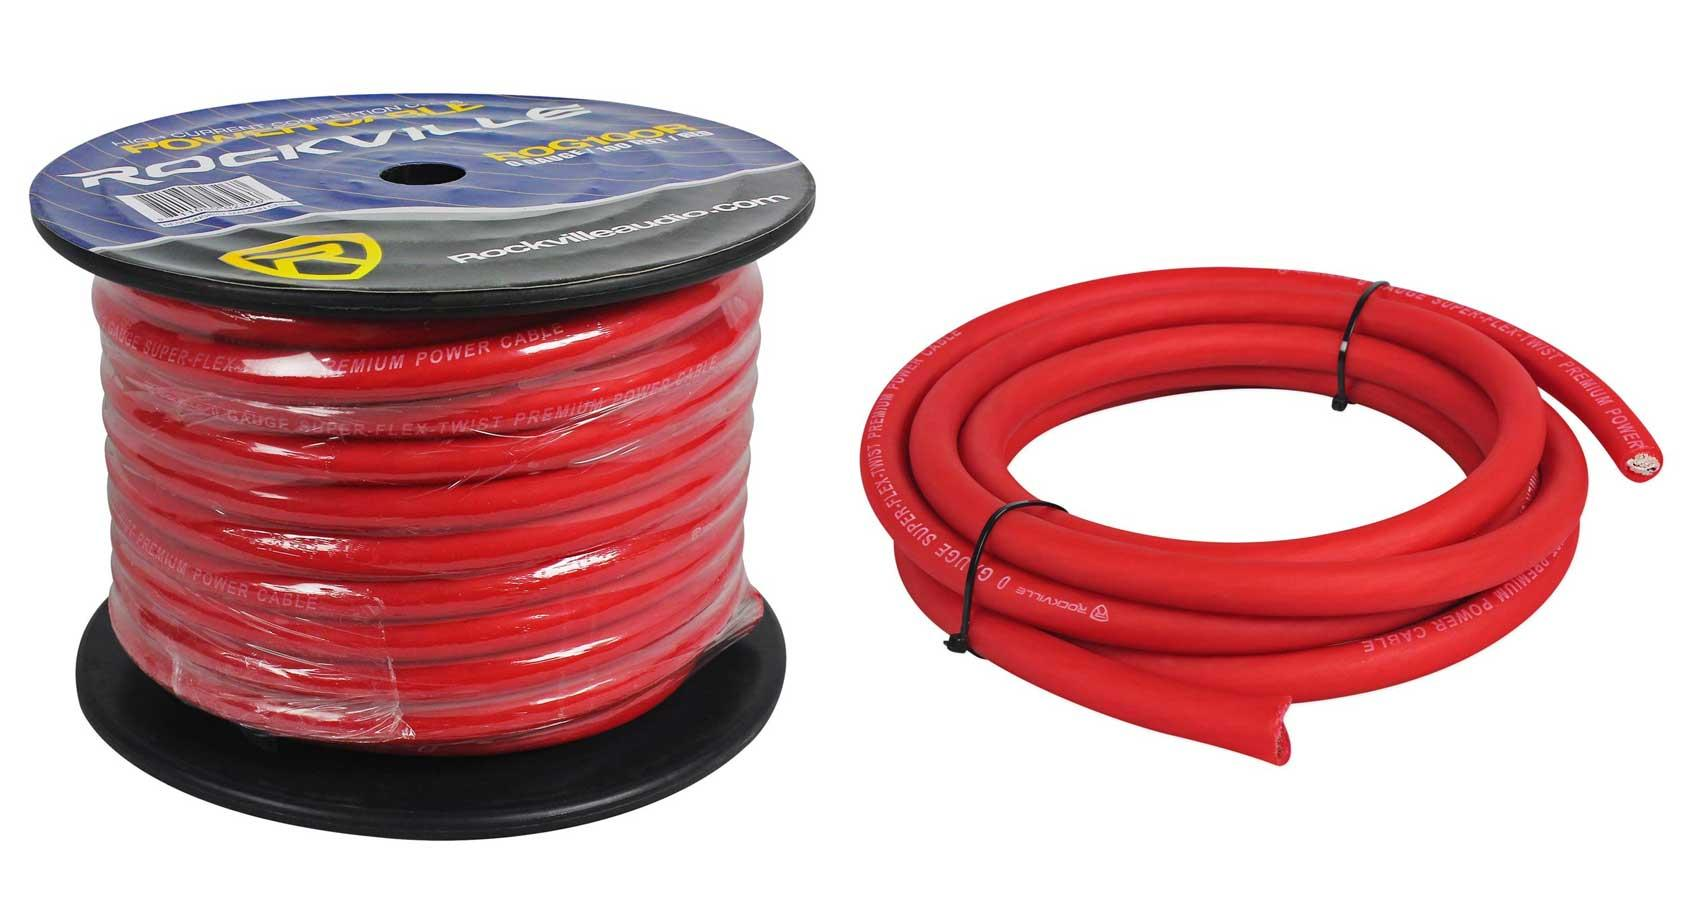 Rockville R0G100 RED 0 Gauge AWG 100 Foot Spool Car Amp Power/Ground Wire Cable